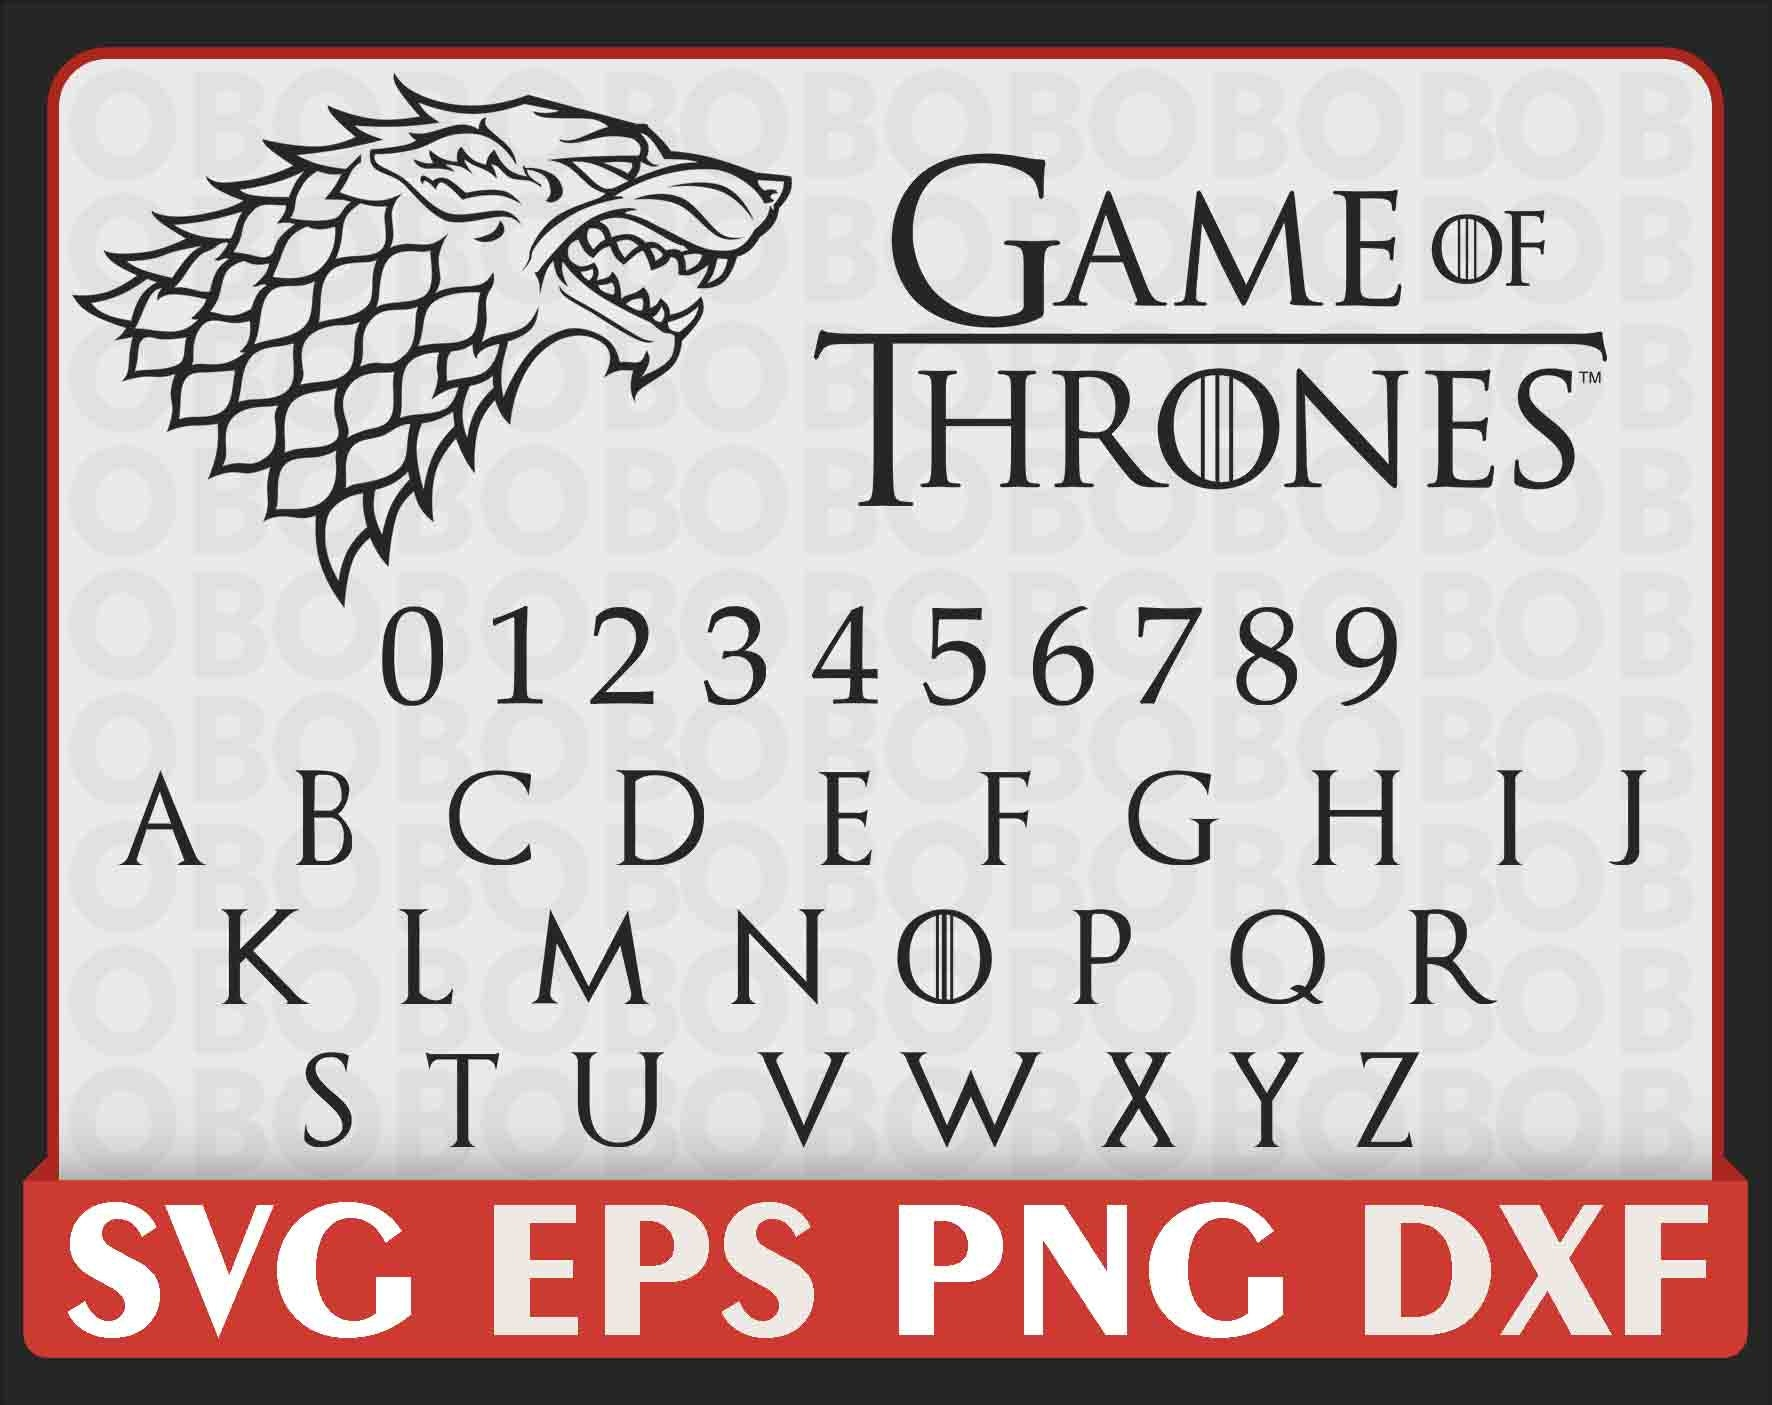 Game of thrones font name list